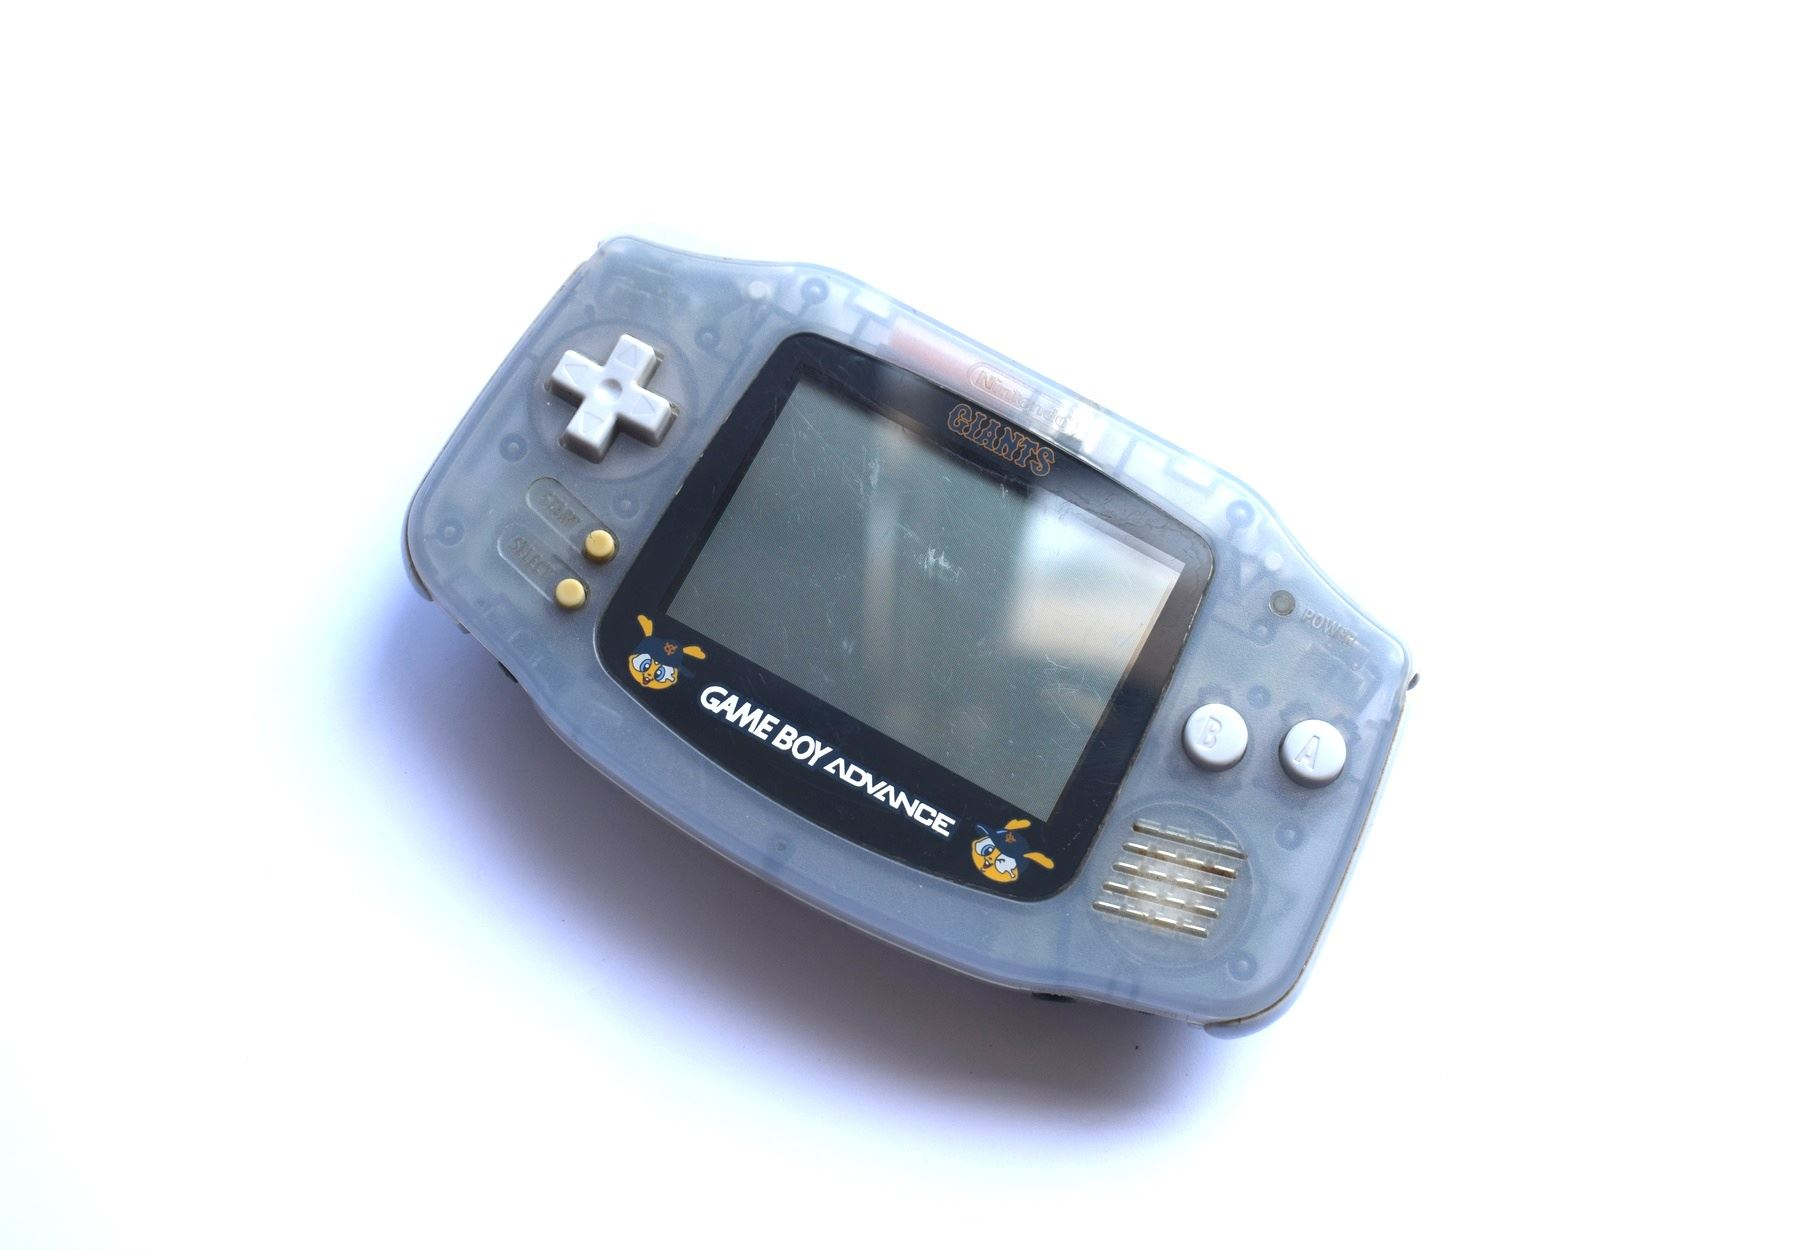 Nintendo-Gameboy-Advance-GBA-Handheld-Console-System-8-Colours-Available thumbnail 17